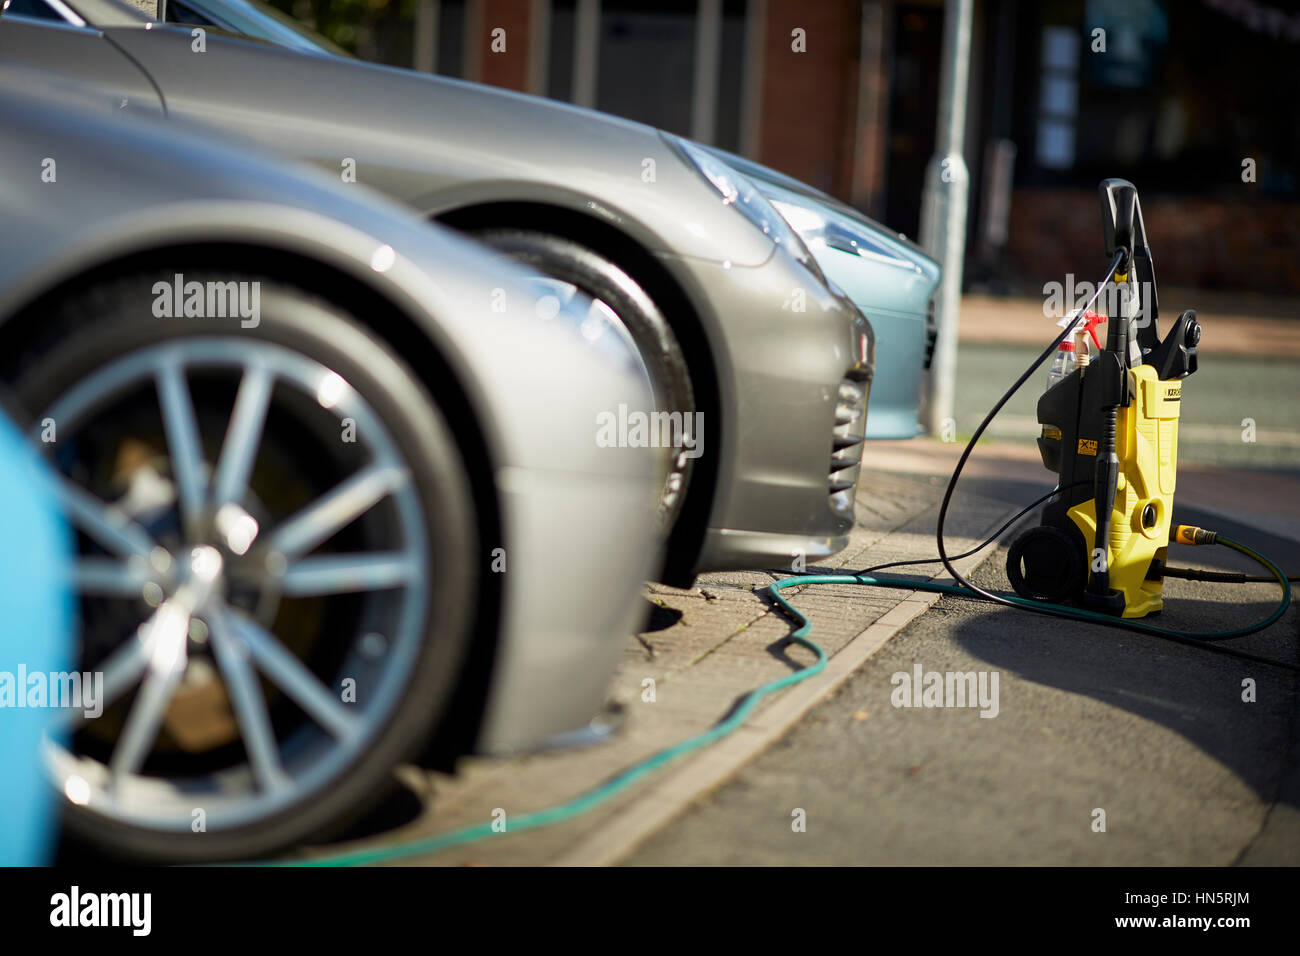 Sunny day in wealthy Cheshire village Wilmslow luxury secondhand car lot sales pitch & showroom for Aston Martin - Stock Image